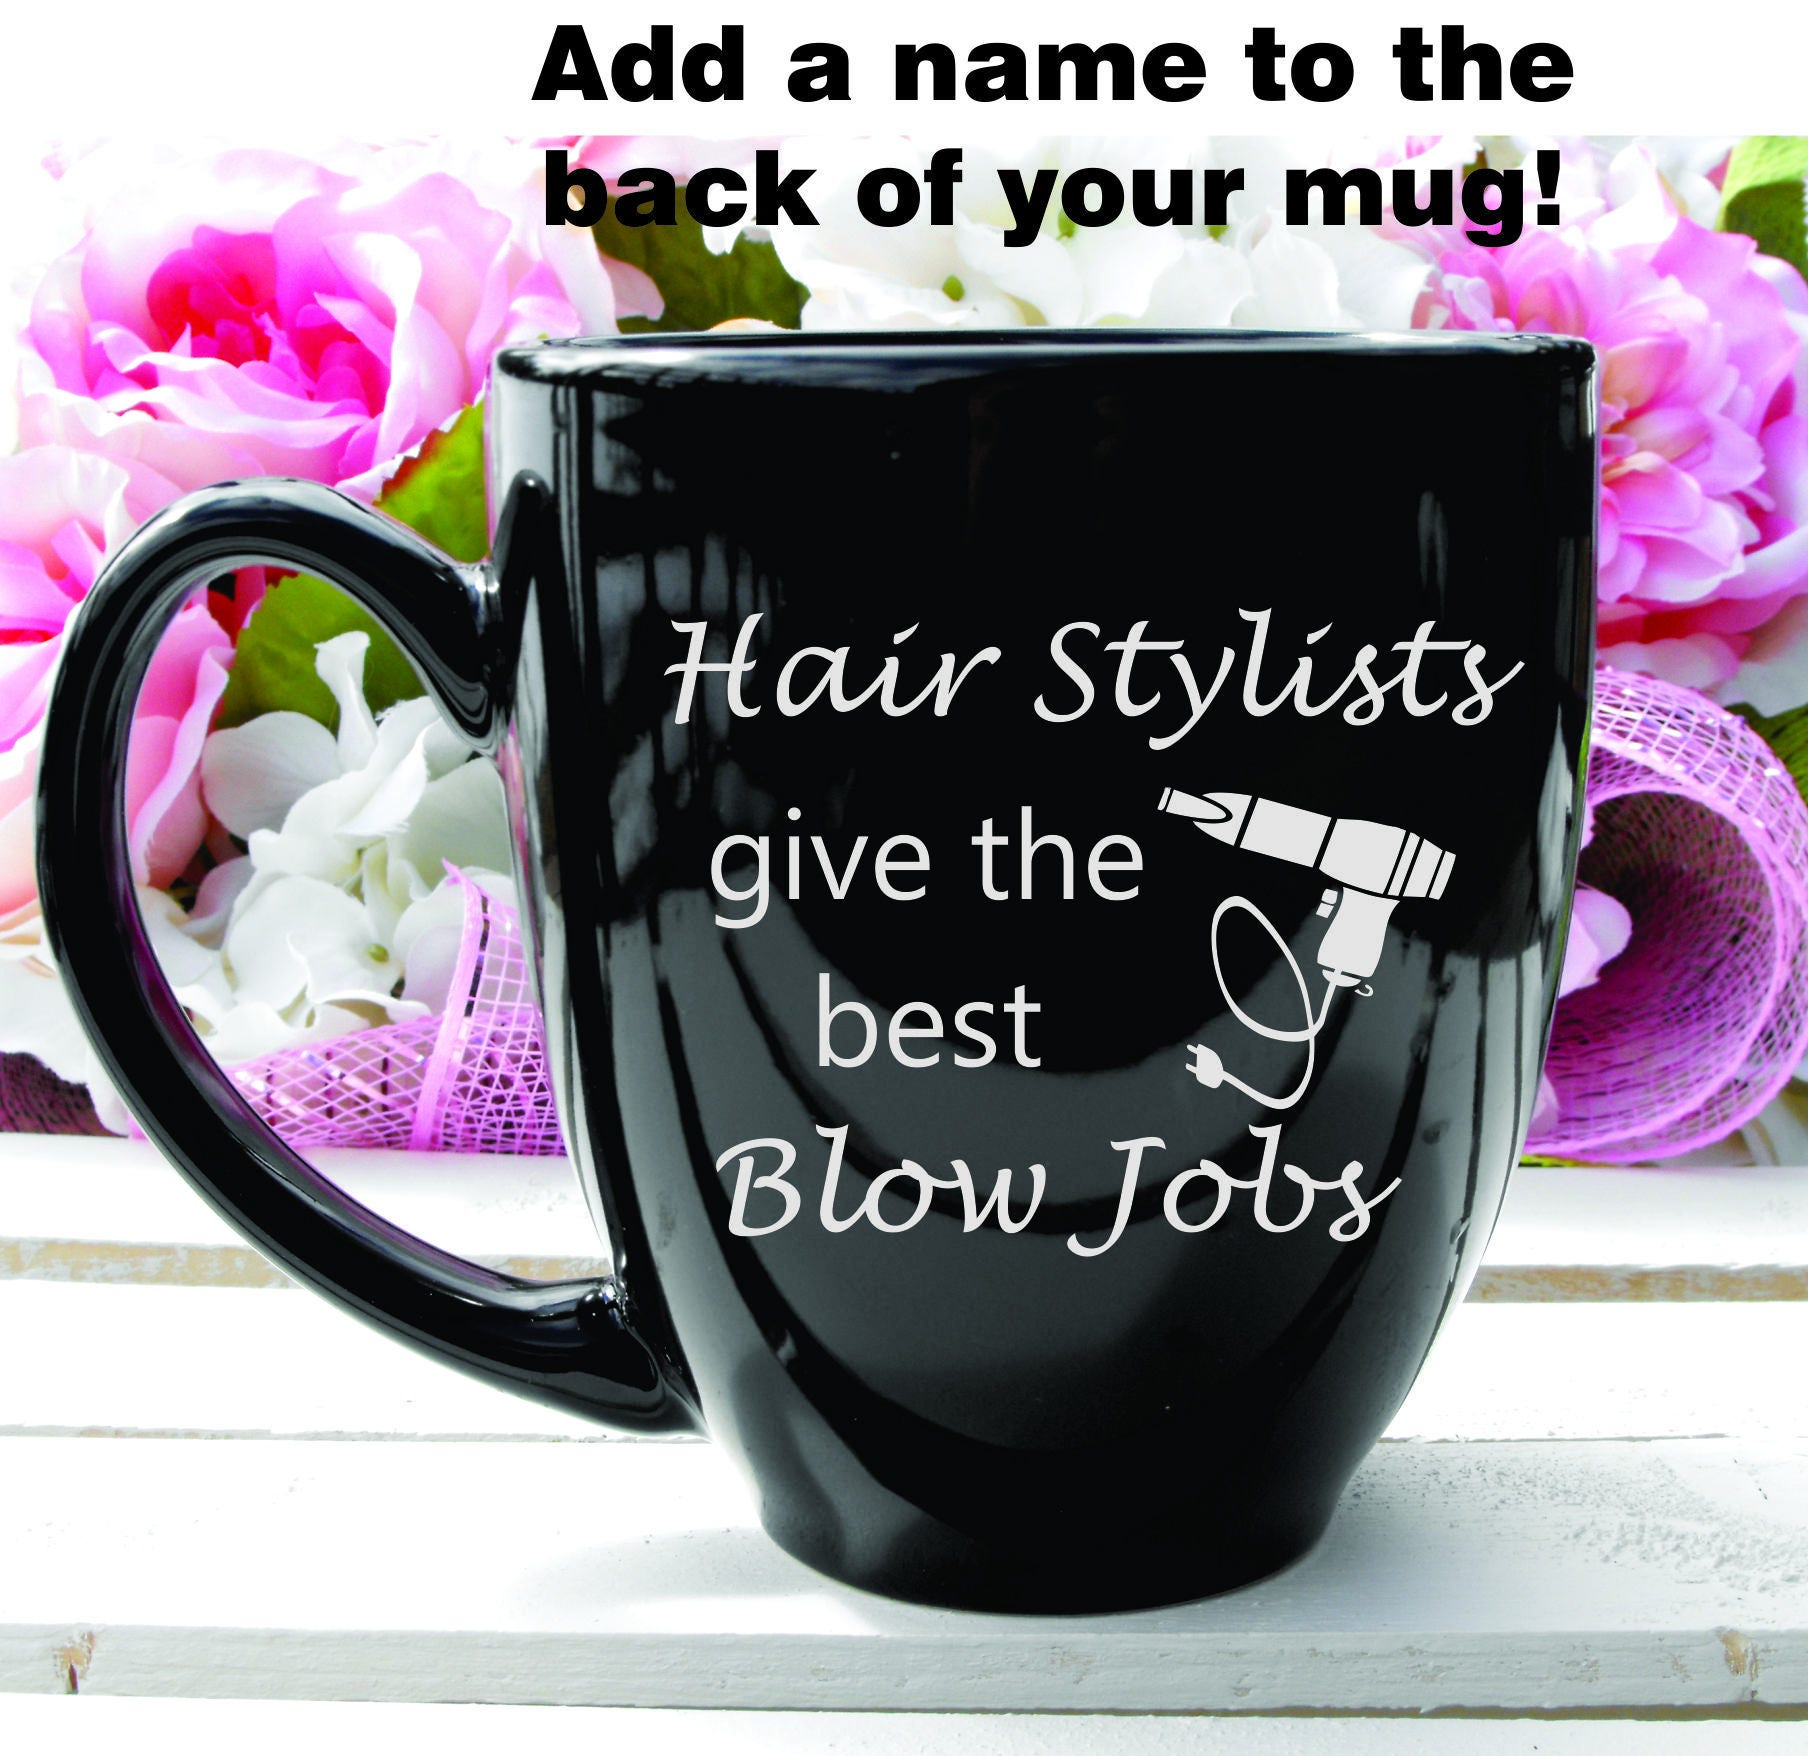 c42f6869 Hair Stylists Give the Best Blow Jobs. Funny Hairstylist Mug Gift. Hair ...